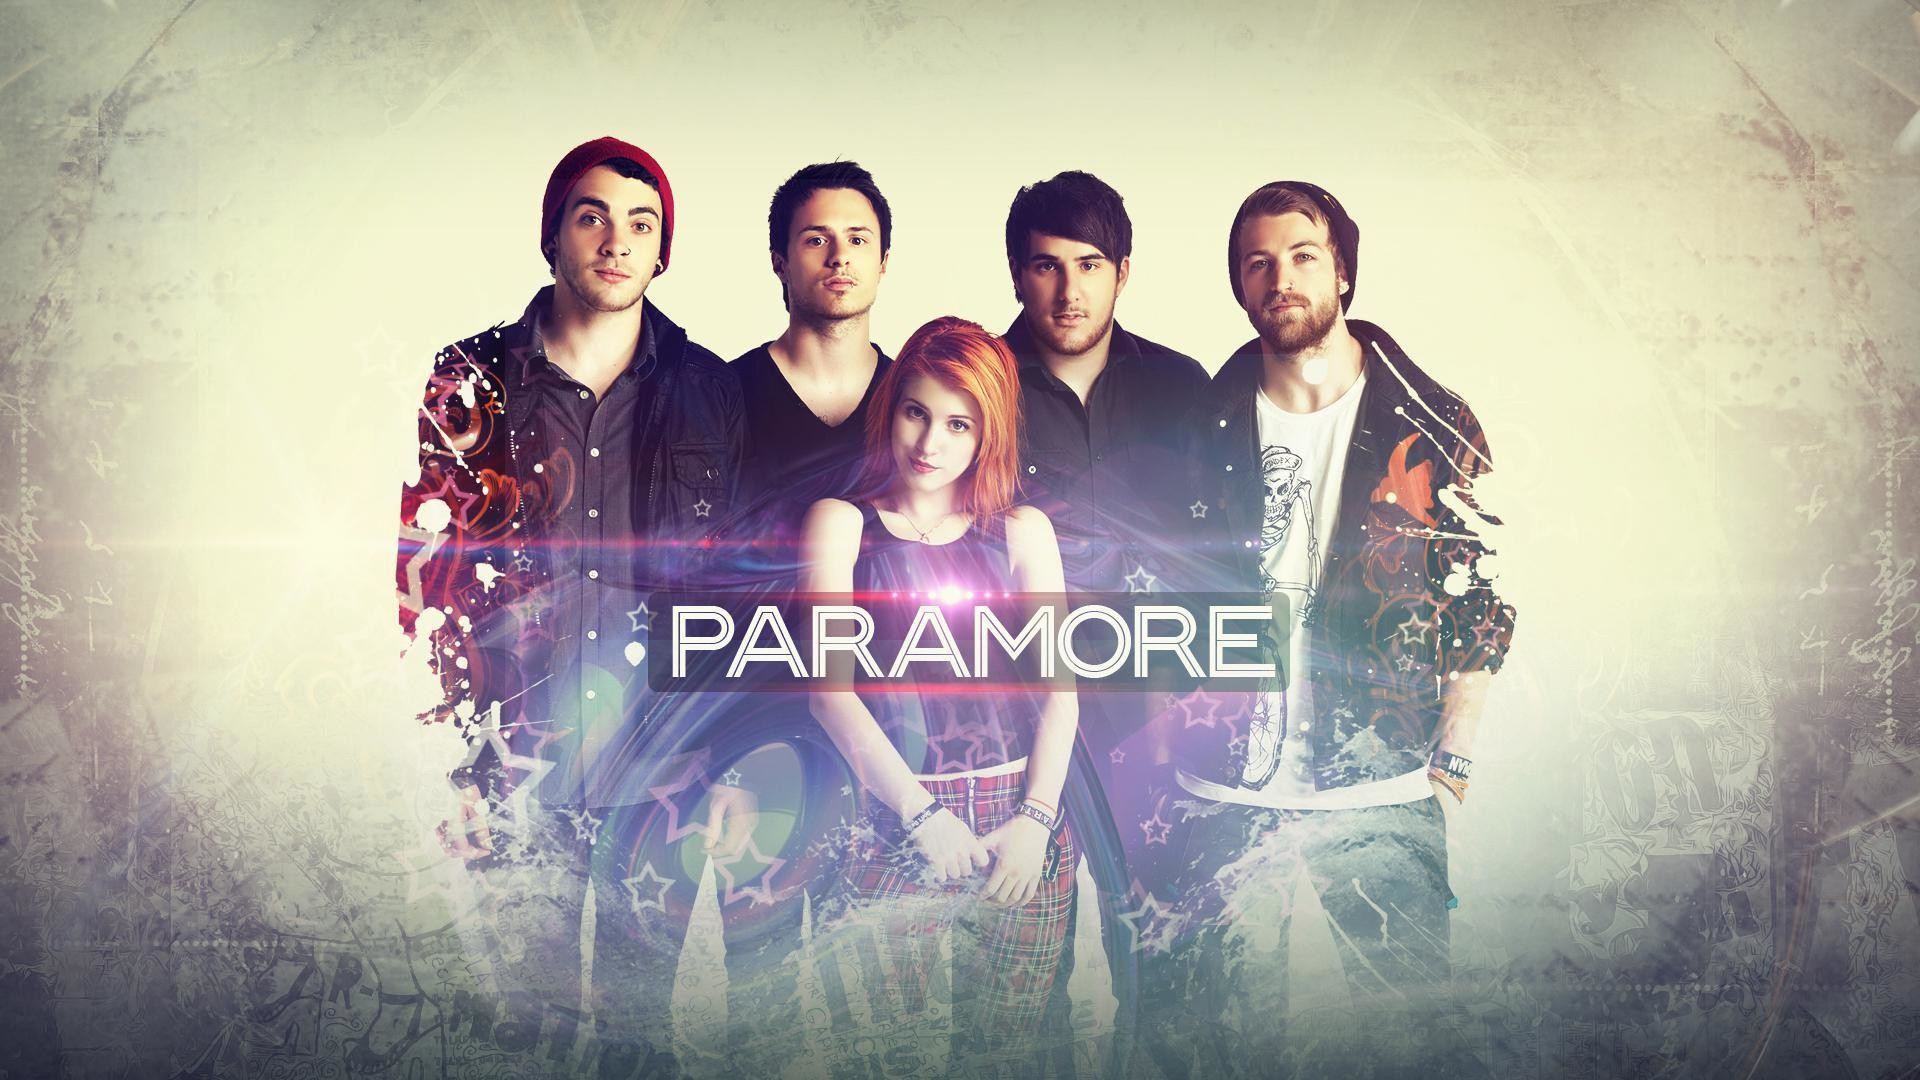 Paramore wallpapers hd 49 images dodowallpaper - Wallpaper abyss categories ...